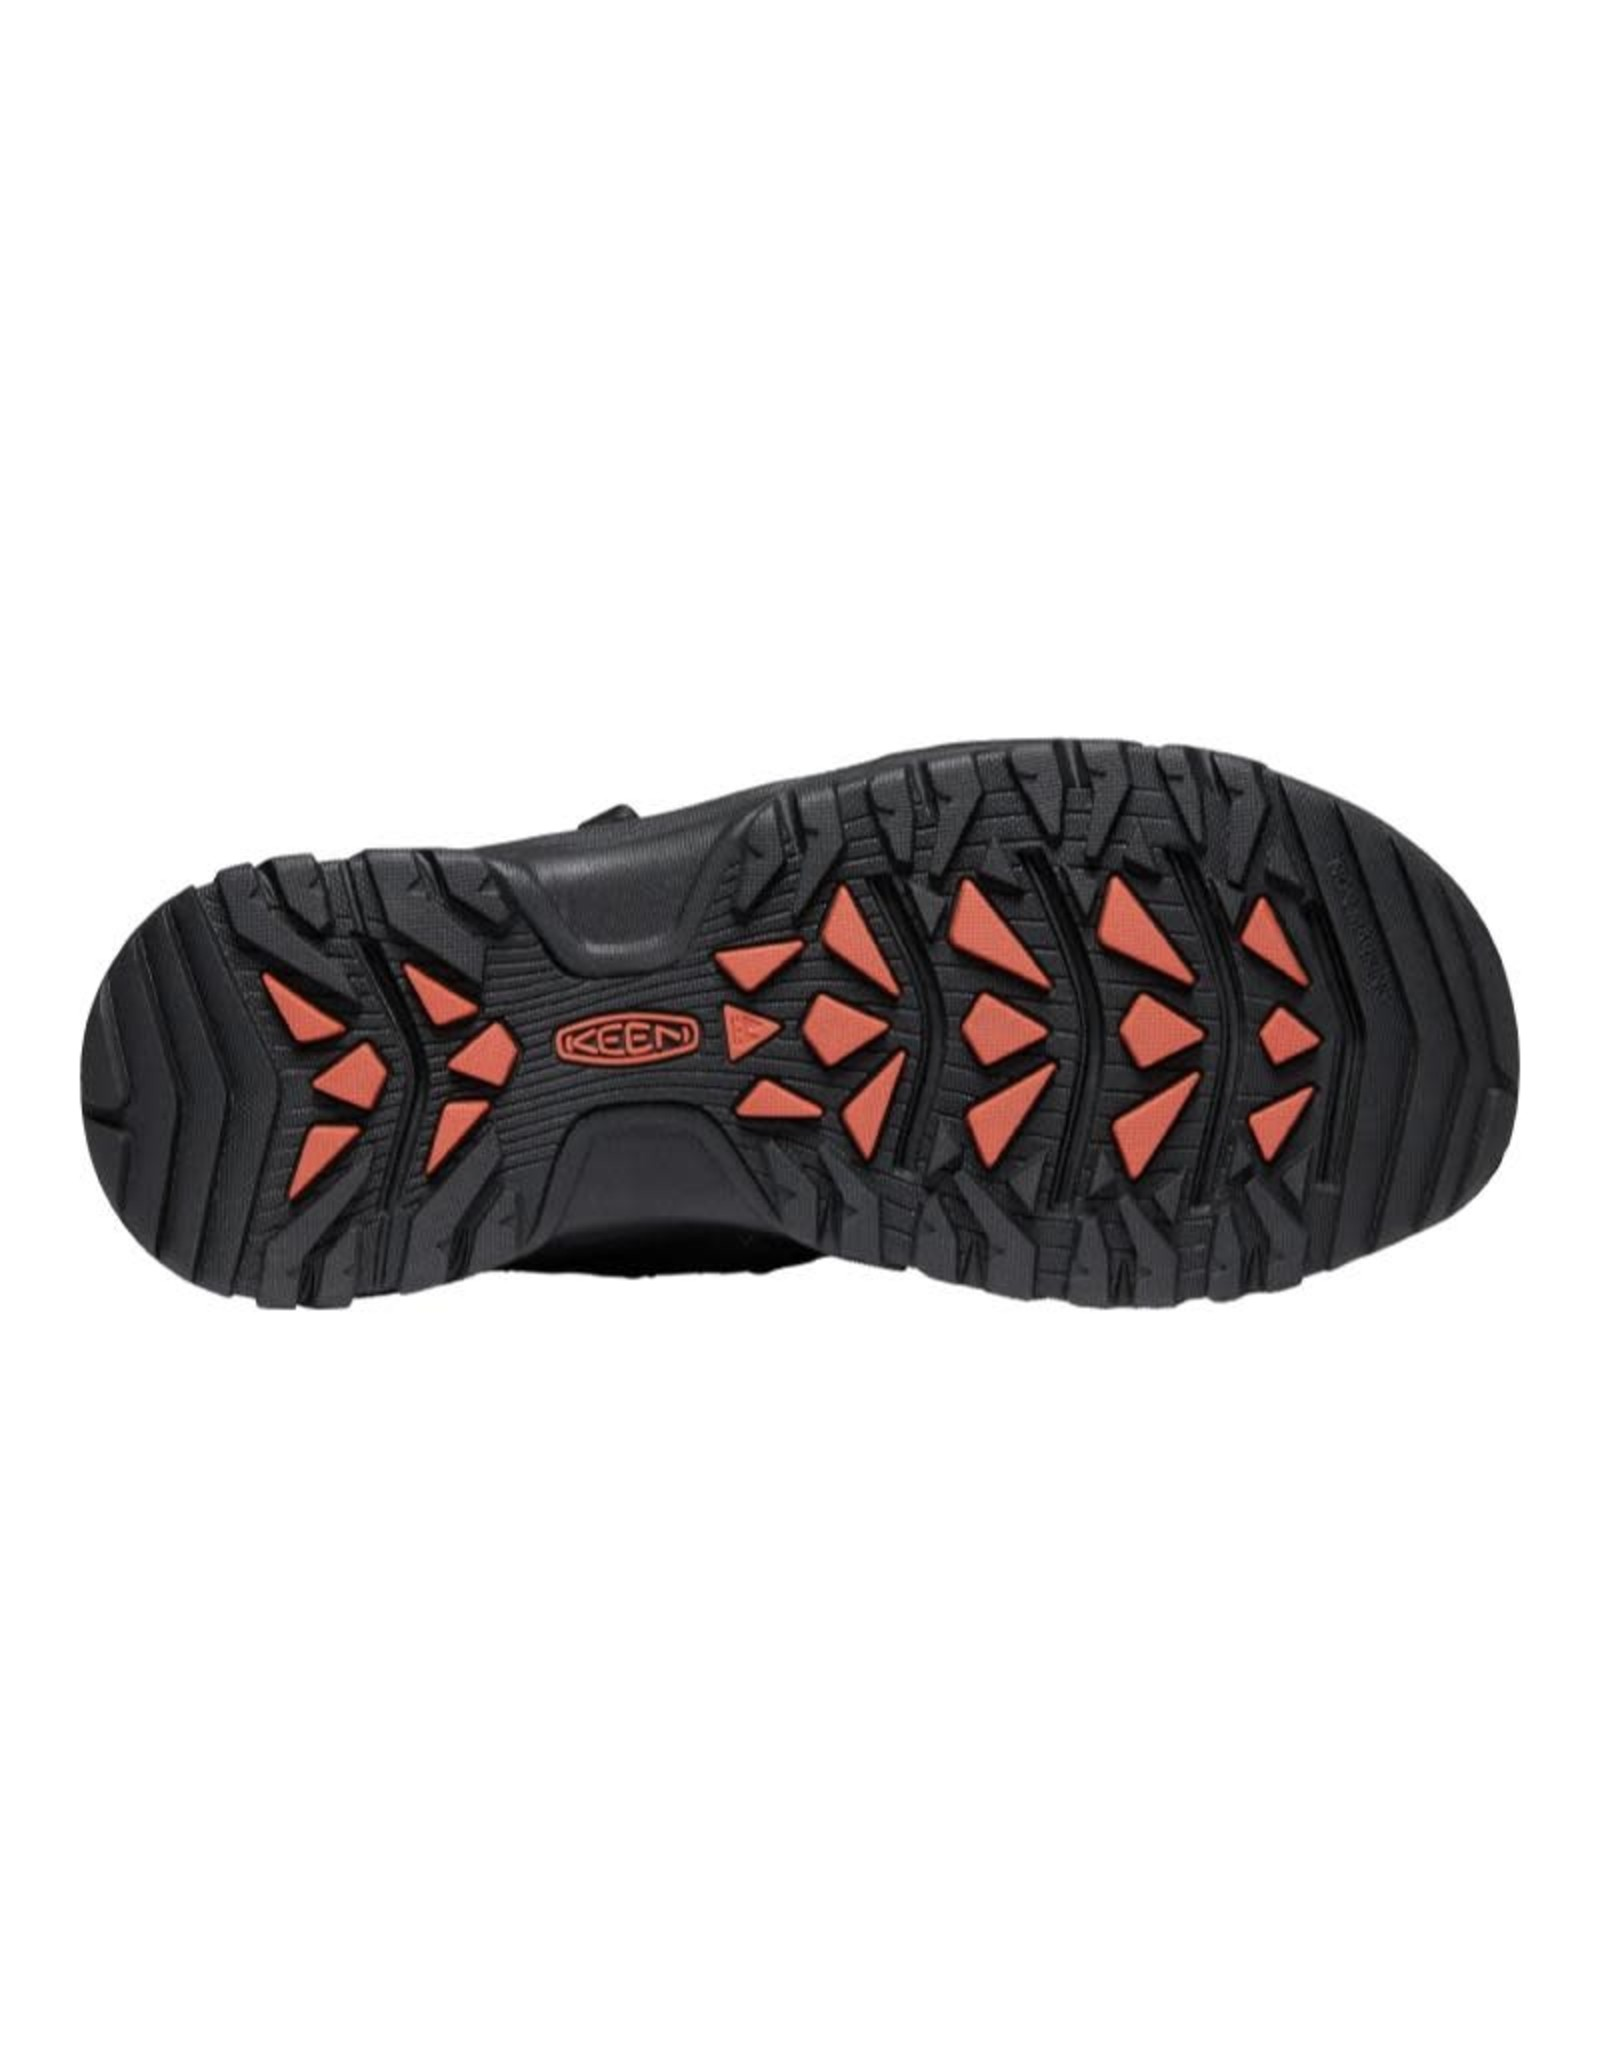 Keen Men's Targhee III Open Toe Sandal